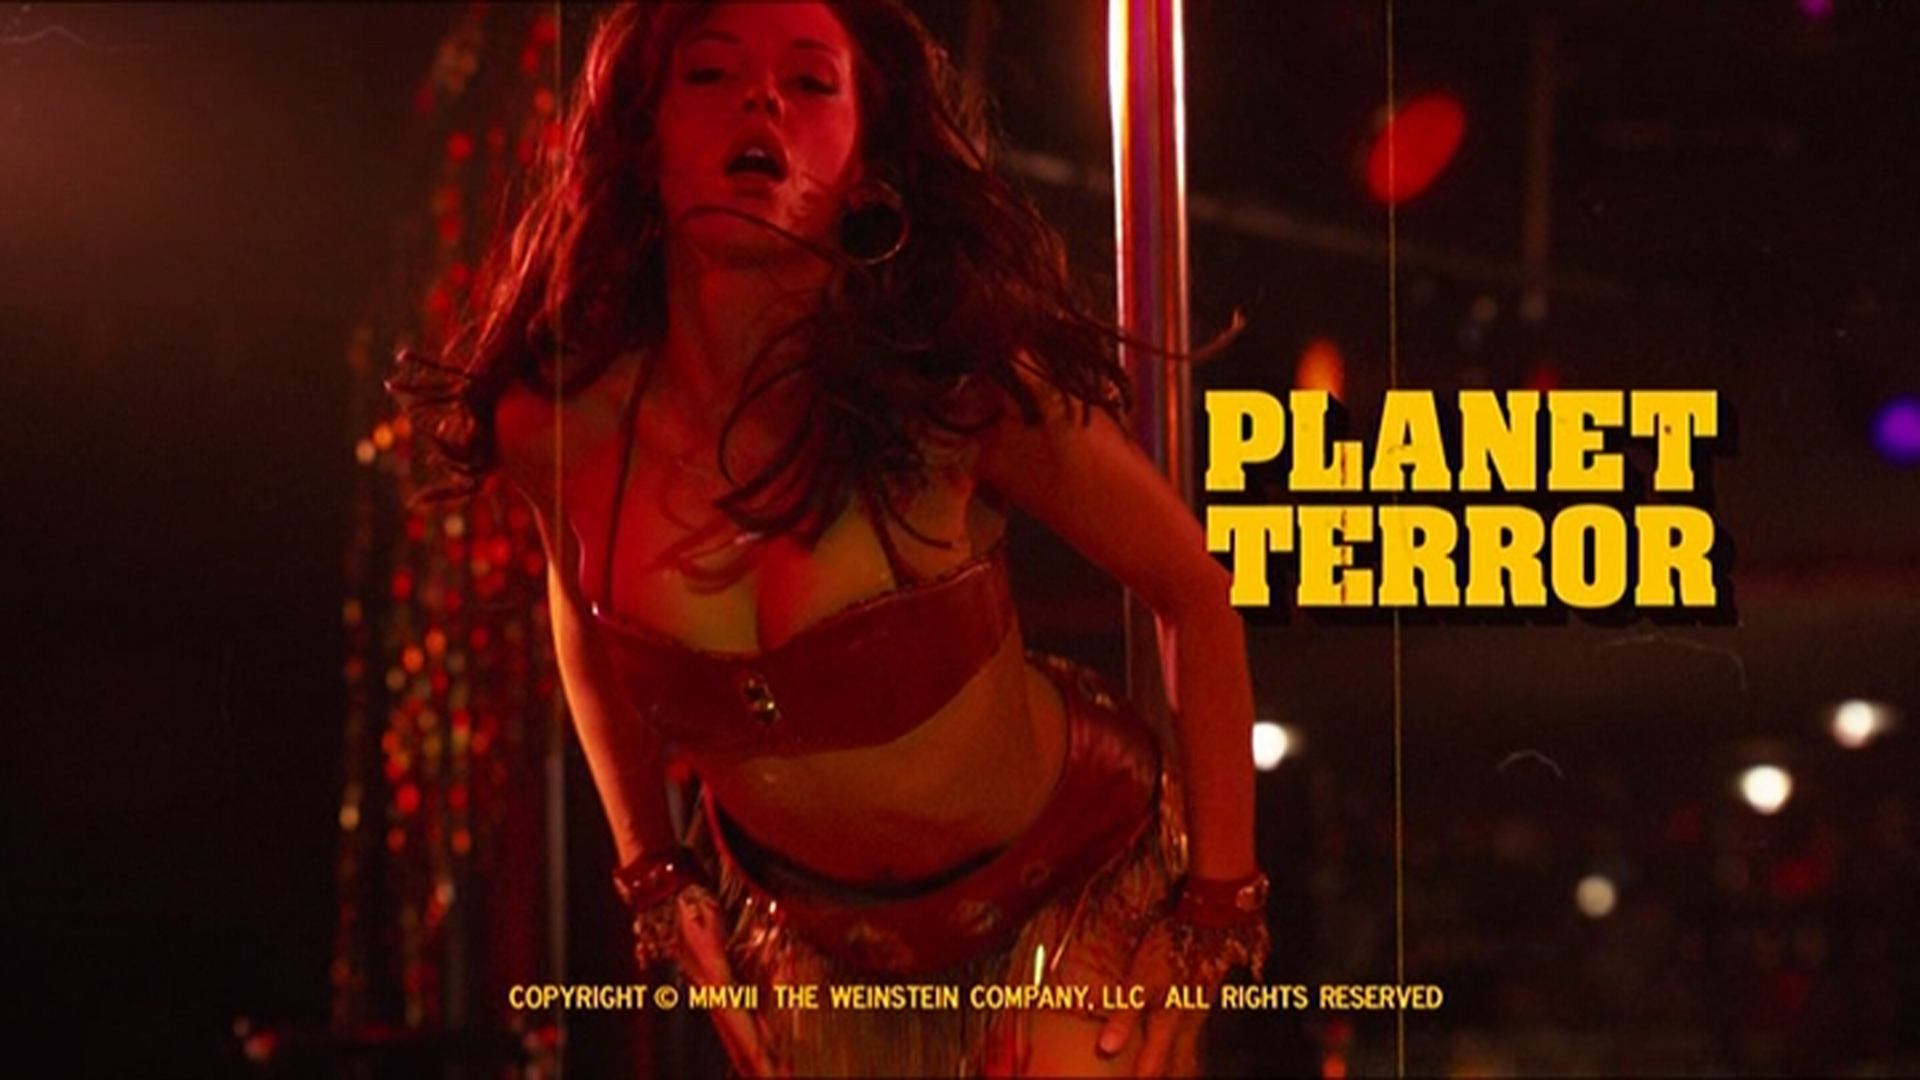 Planet Terror Spanish - lugames Bruce Willis Imdb